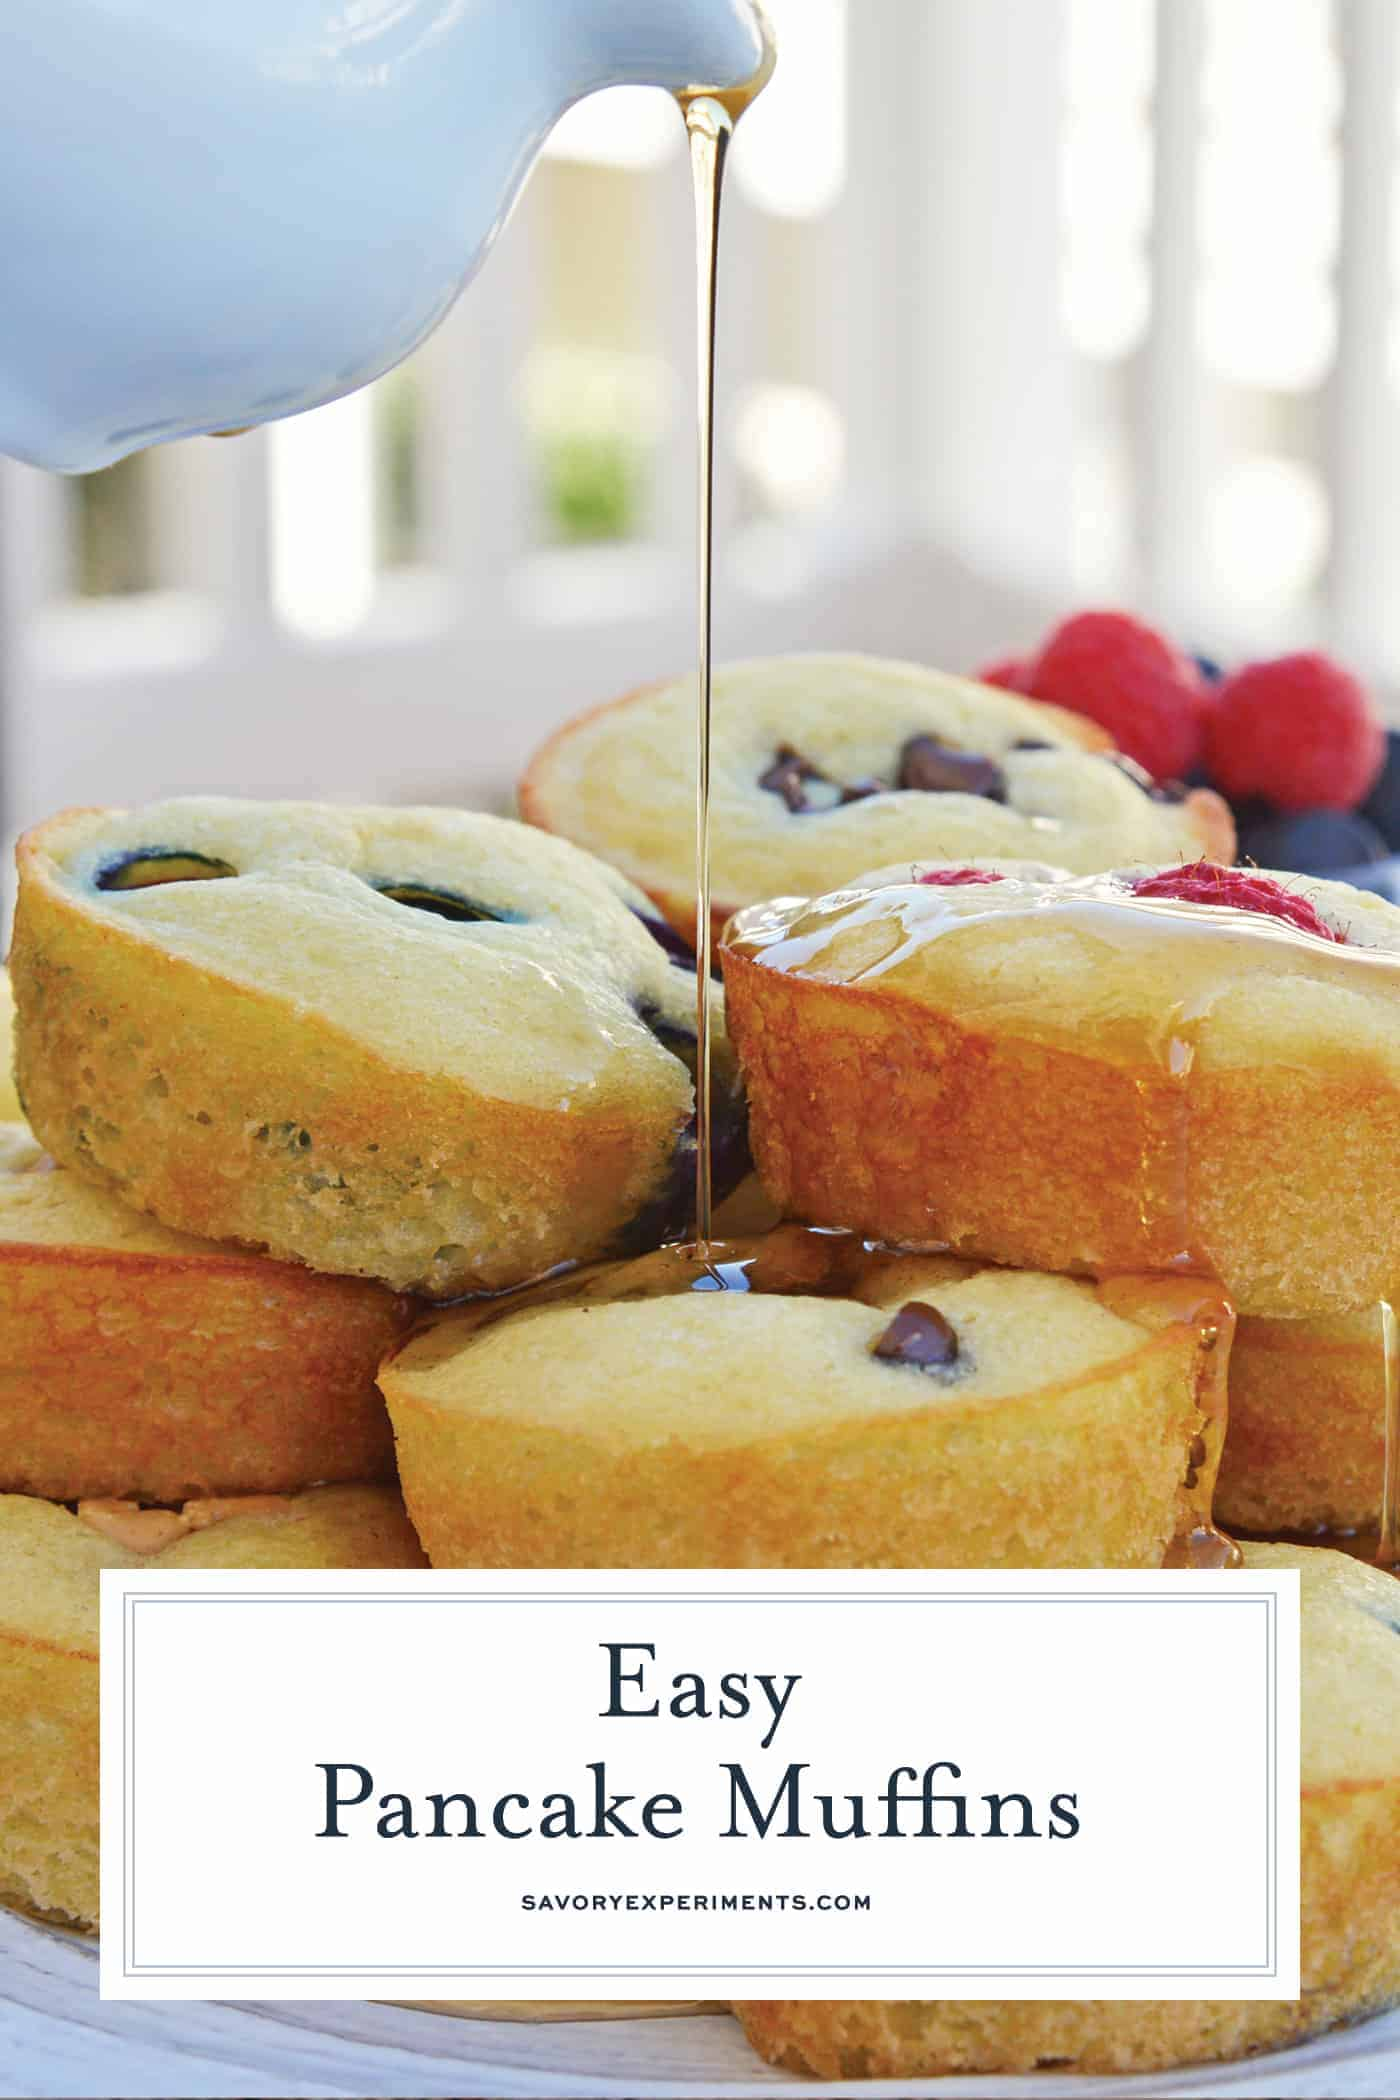 Pancake Muffins are a quick and easy pancake recipe that's perfect for busy mornings. Enjoy these homemade pancakes at home or on the go. #pancakemuffins #pancakerecipe #homemadepancakes www.savoryexperiments.com